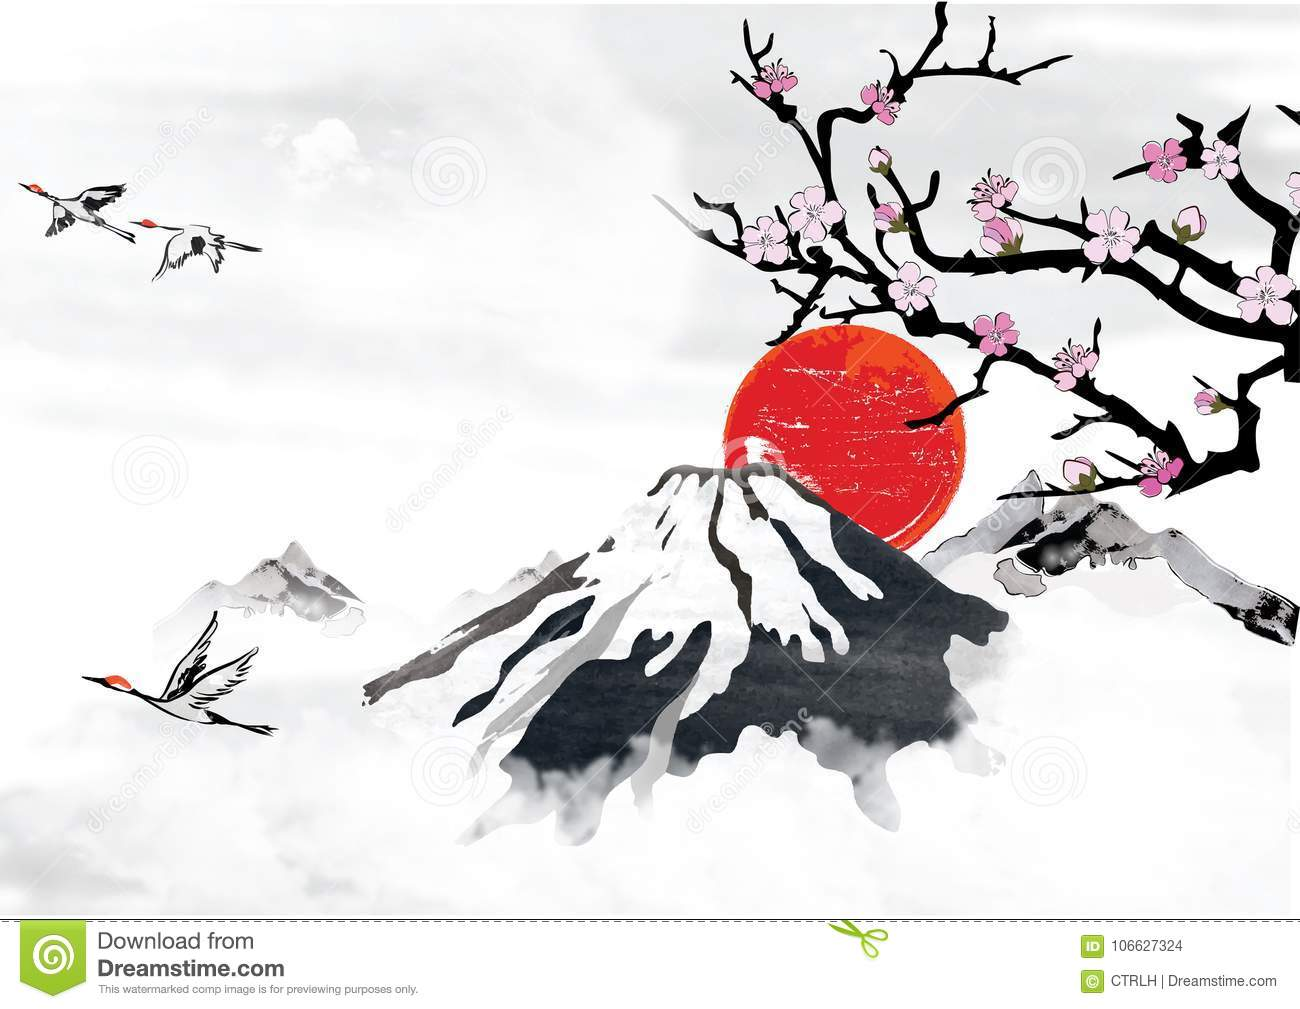 Background for japanese greeting cards with stylized mountains and download background for japanese greeting cards with stylized mountains and flying crane birds stock illustration m4hsunfo